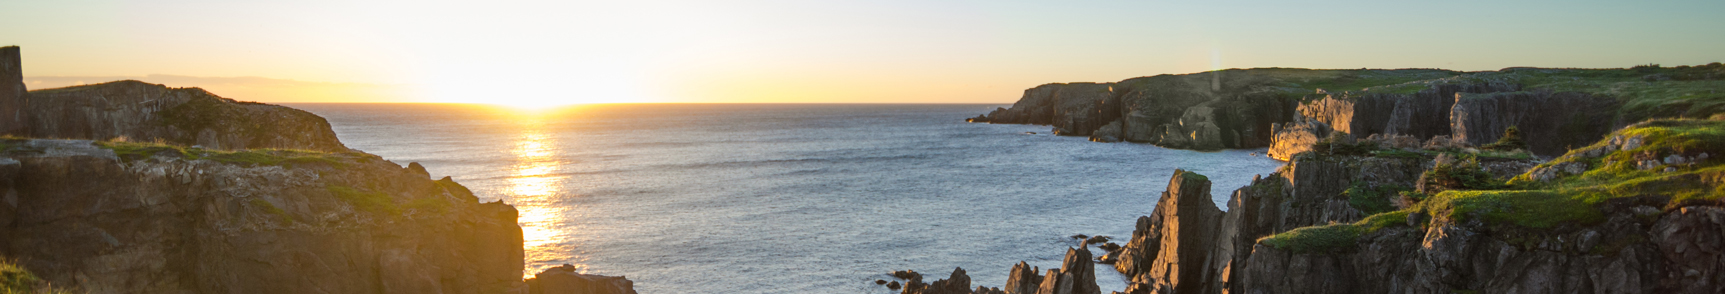 panoramic view of cliffs overlooking the ocean with a sunrise in the background